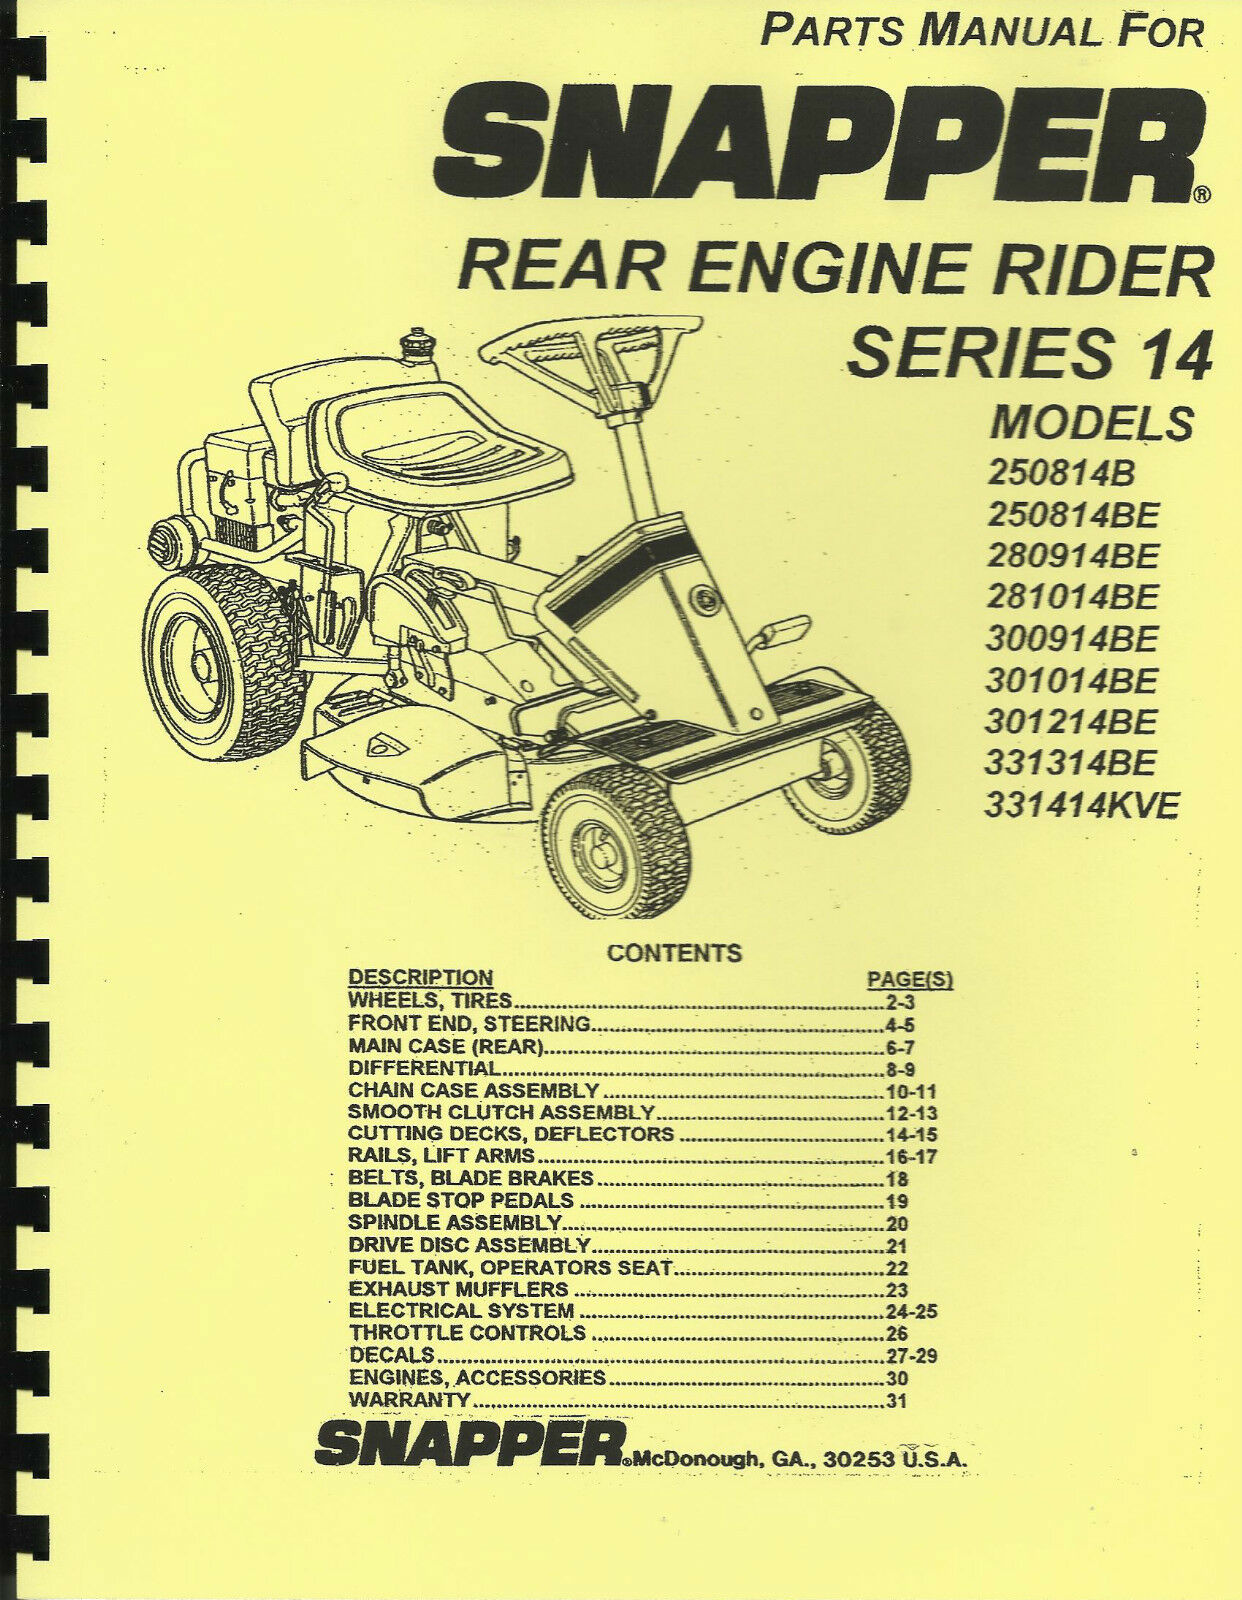 Wiring Schematic Kohler Engine Diagram And Parts List For Snapper